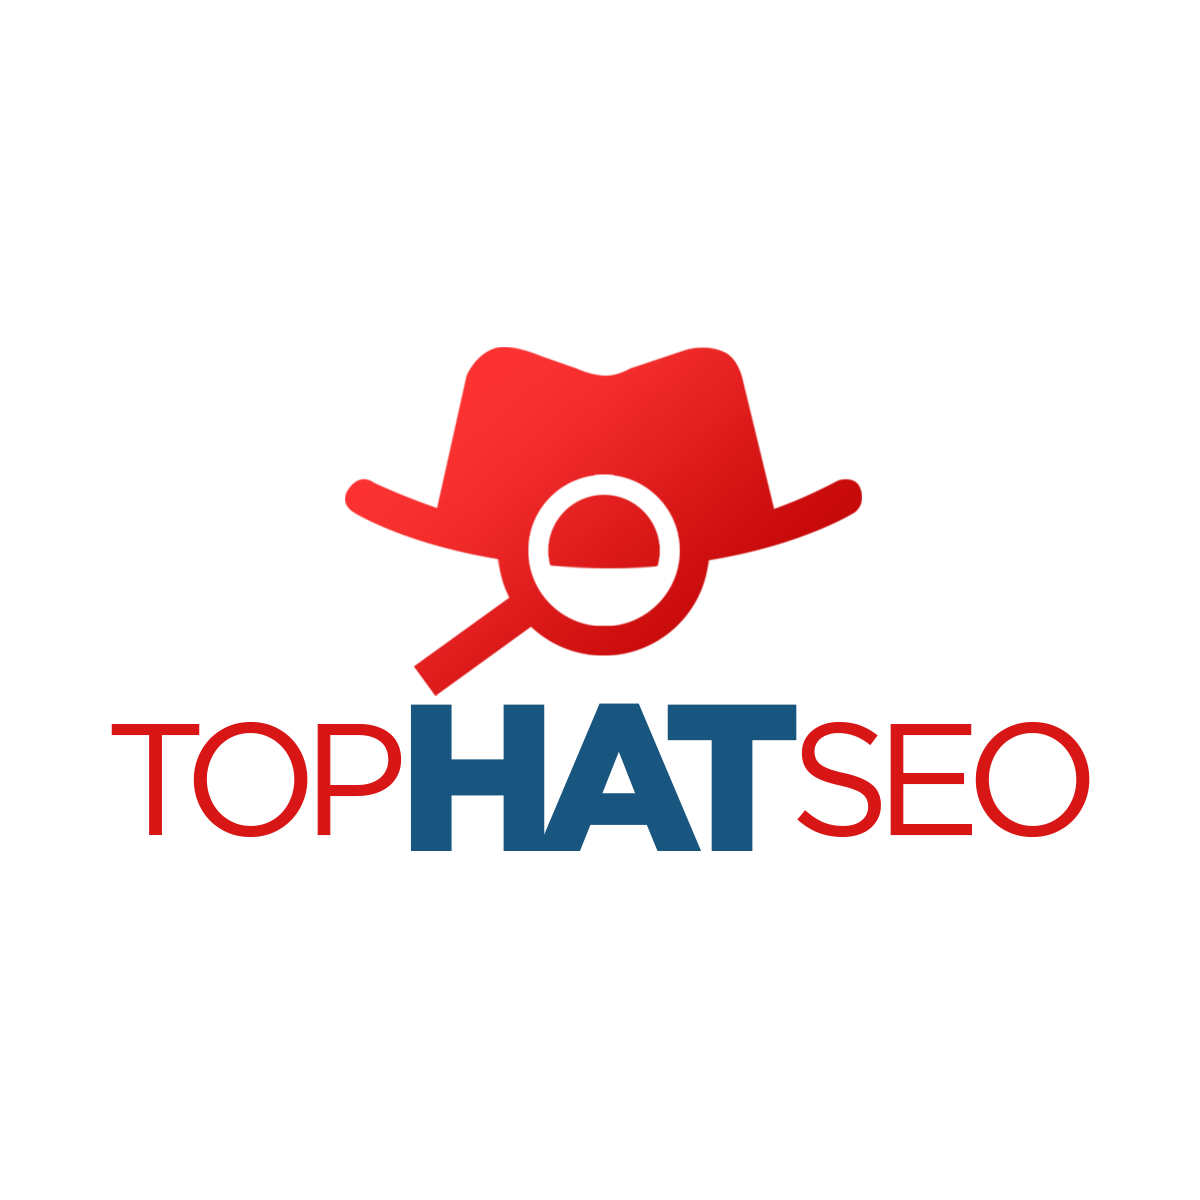 SEO Company | SEO Services | SEO Marketing | Top Hat SEO